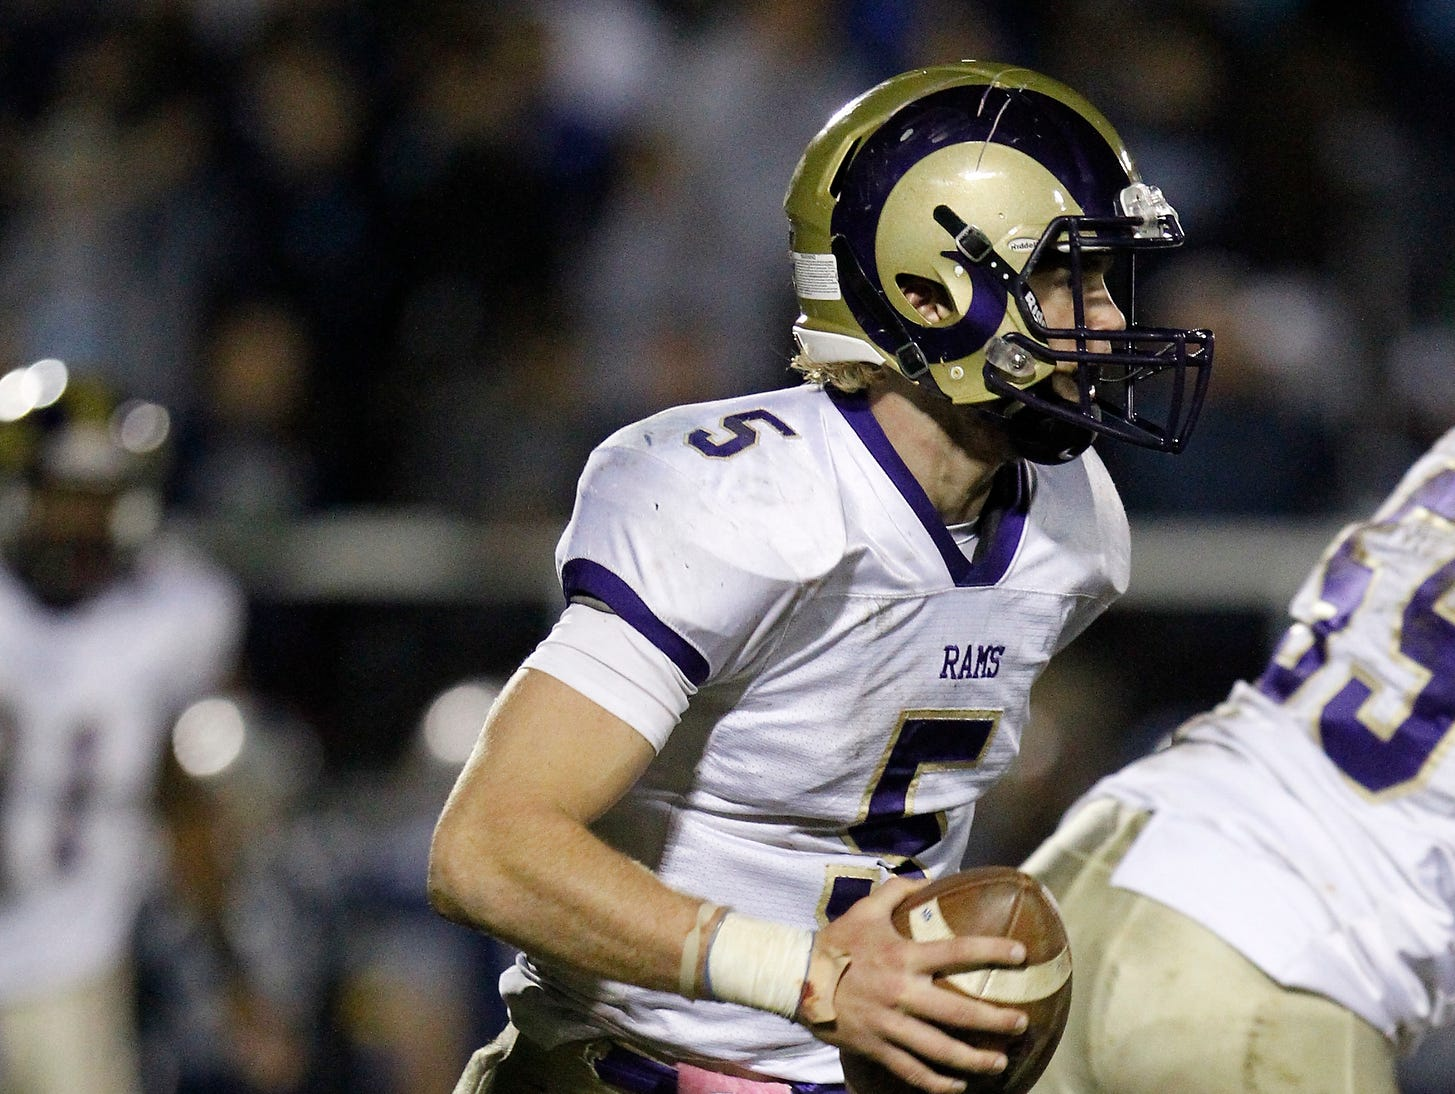 Clarkstown North quarterback Jack Abrams (5) runs out of the pocket during their 21-7 loss to John Jay High School in the class AA semi-final football game in East Fishkill on Friday, Oct. 30, 2015.